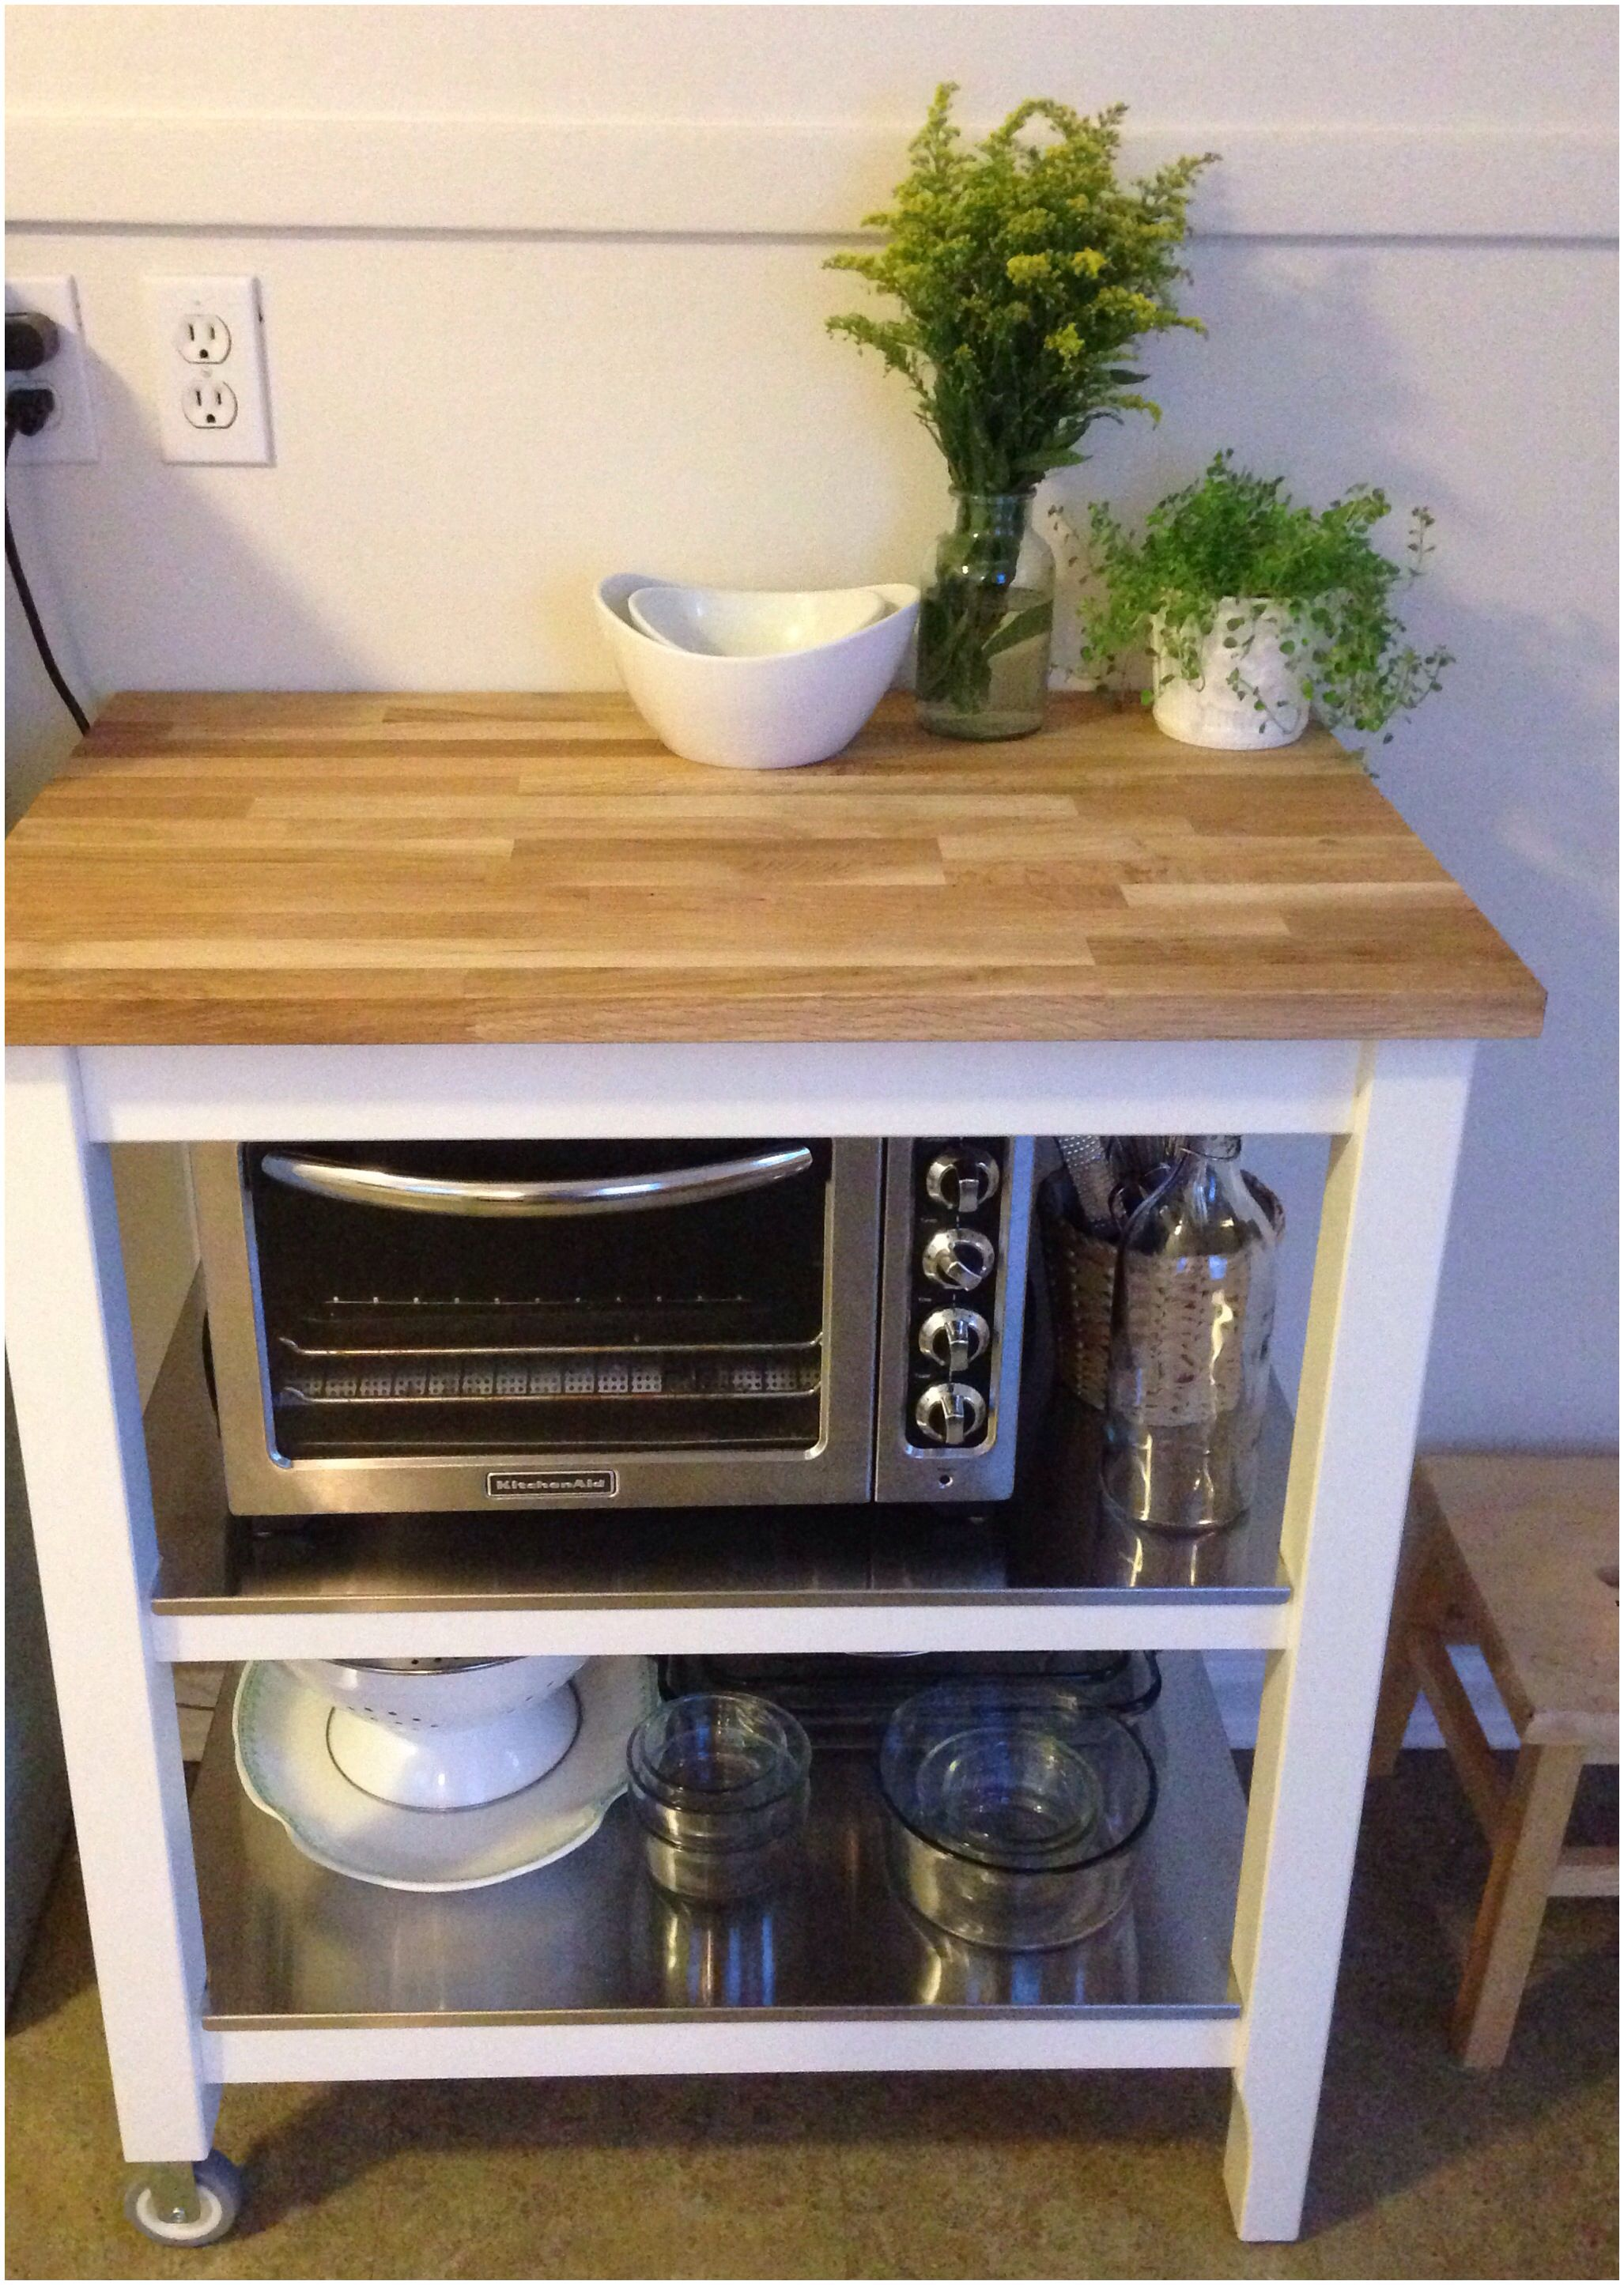 My new Ikea Stenstorp kitchen cart is everything I dreamed and more ...